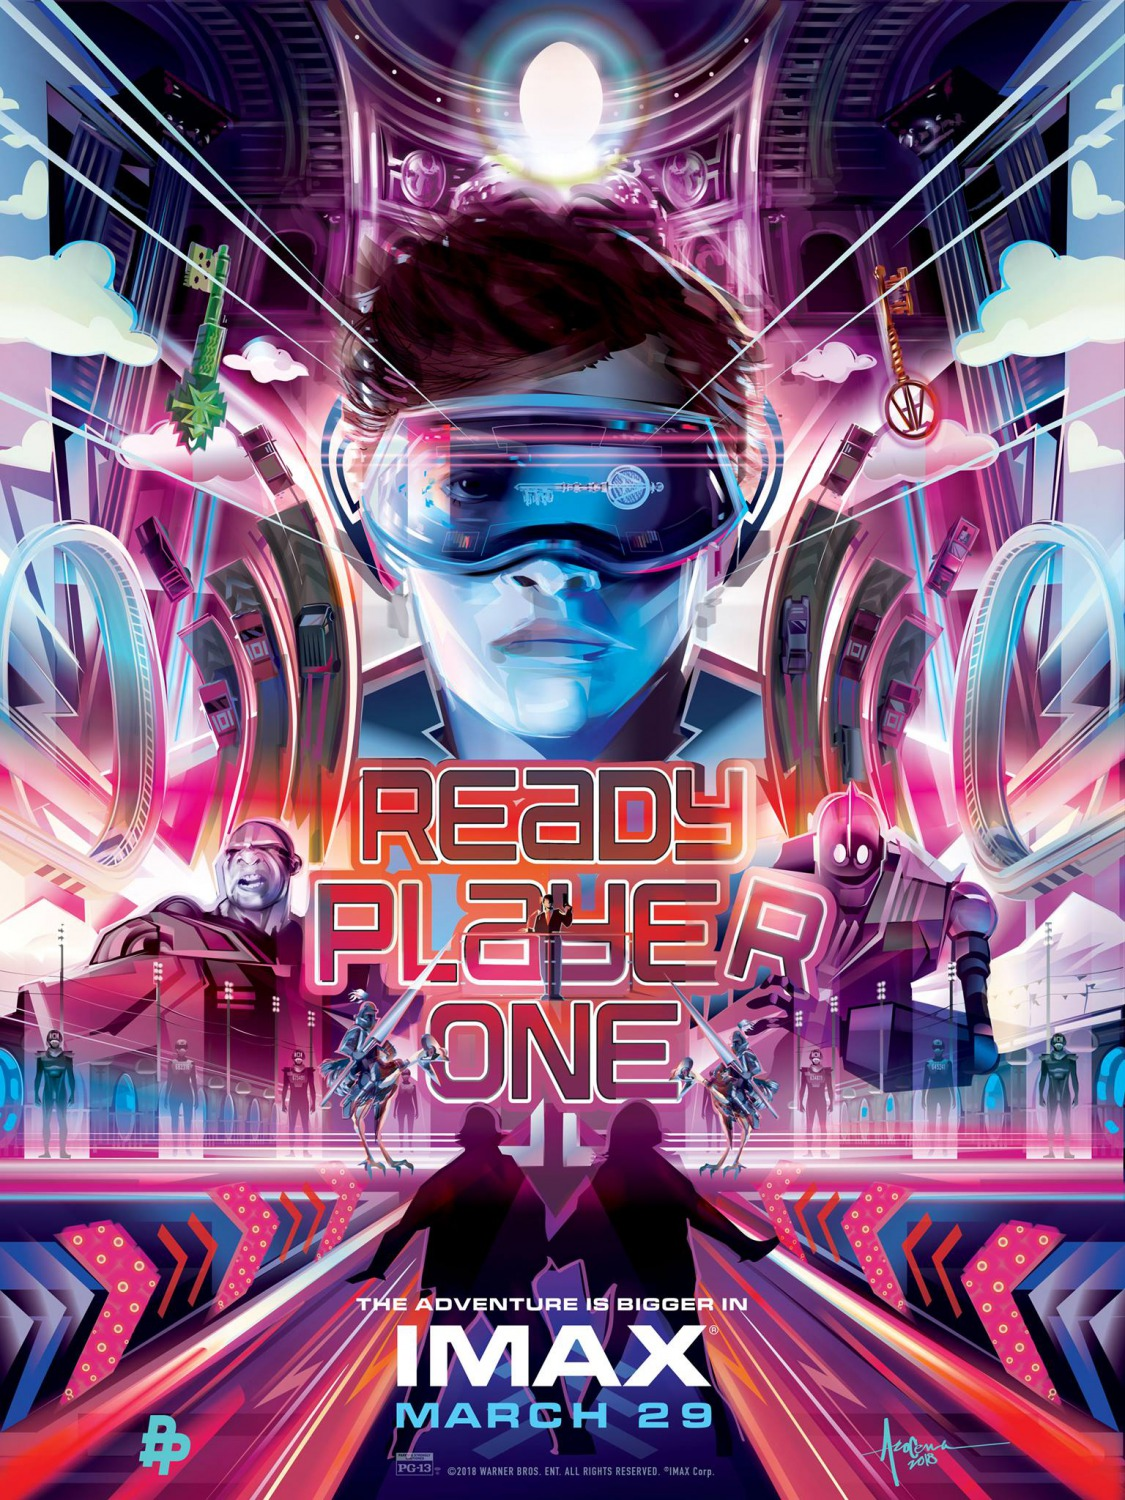 Ready Player One (film) - Wikipedia